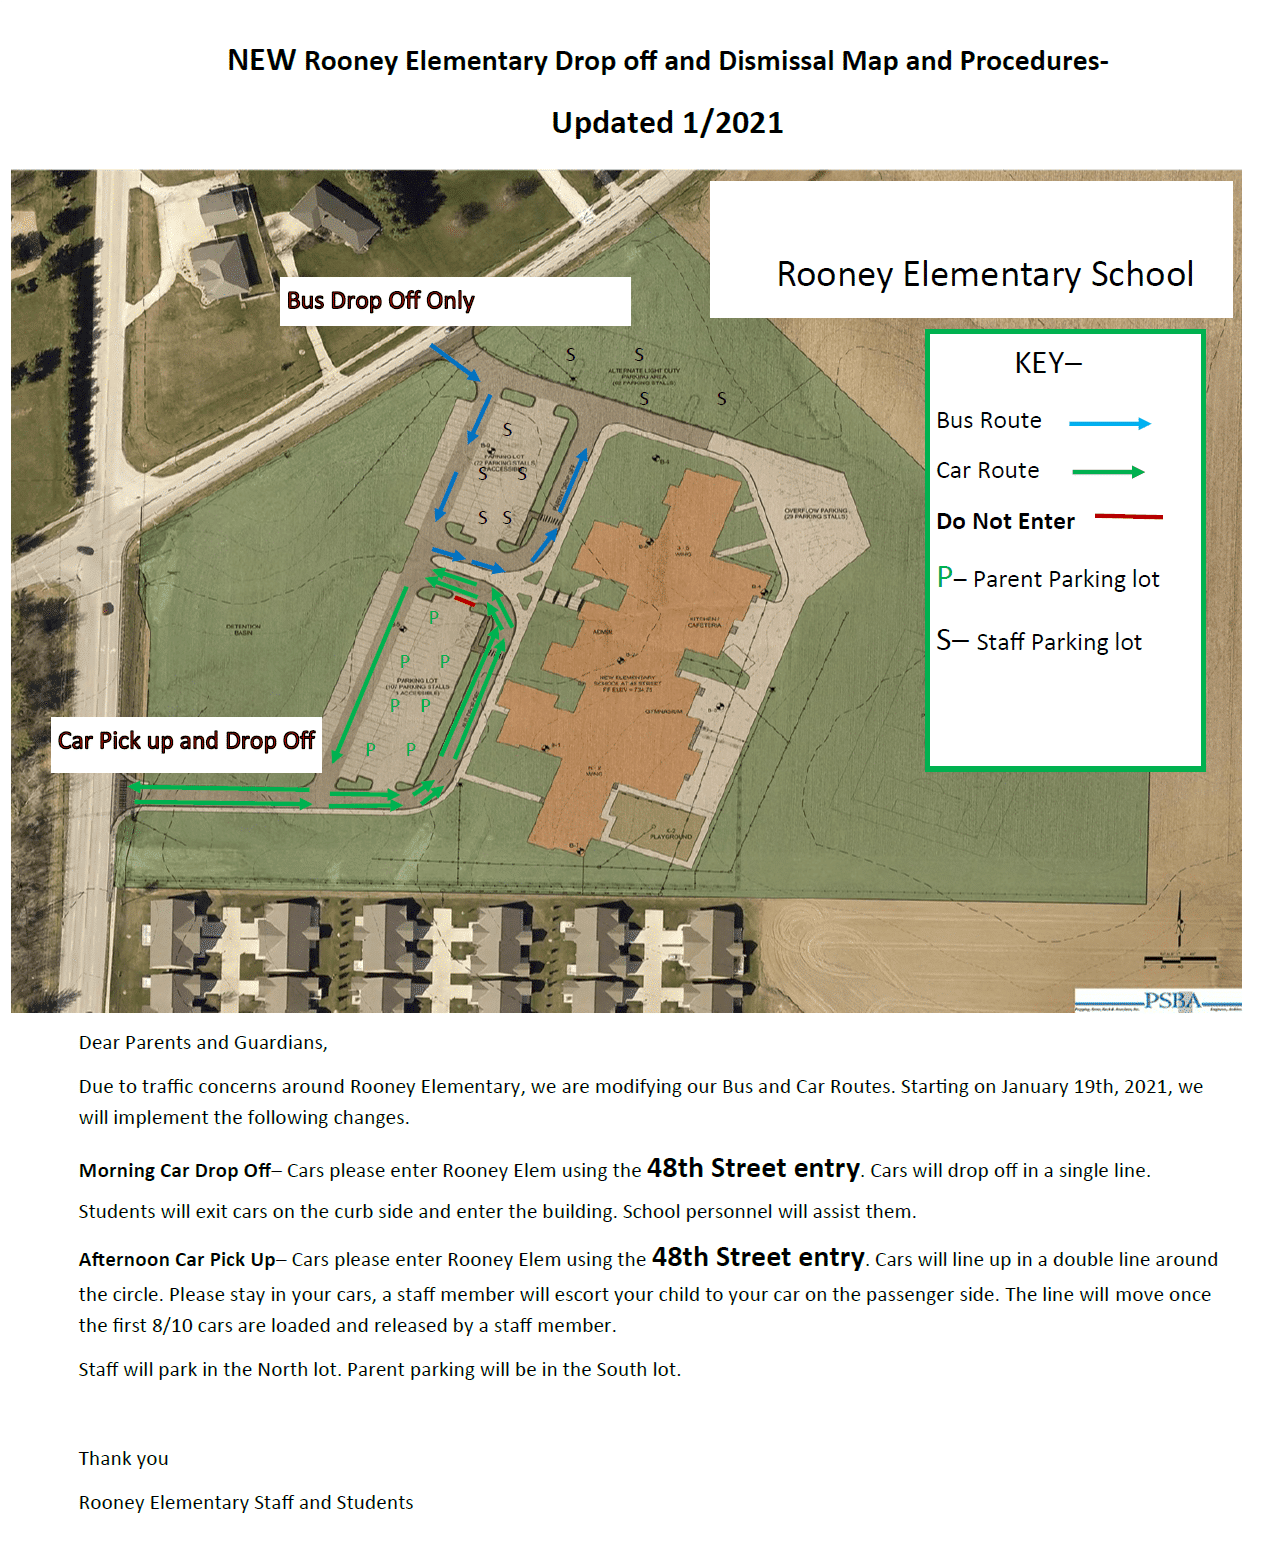 This image is an aerial view of Rooney Elementary School and adjacent roads.  The map shows entry and exit for both school parking lots.